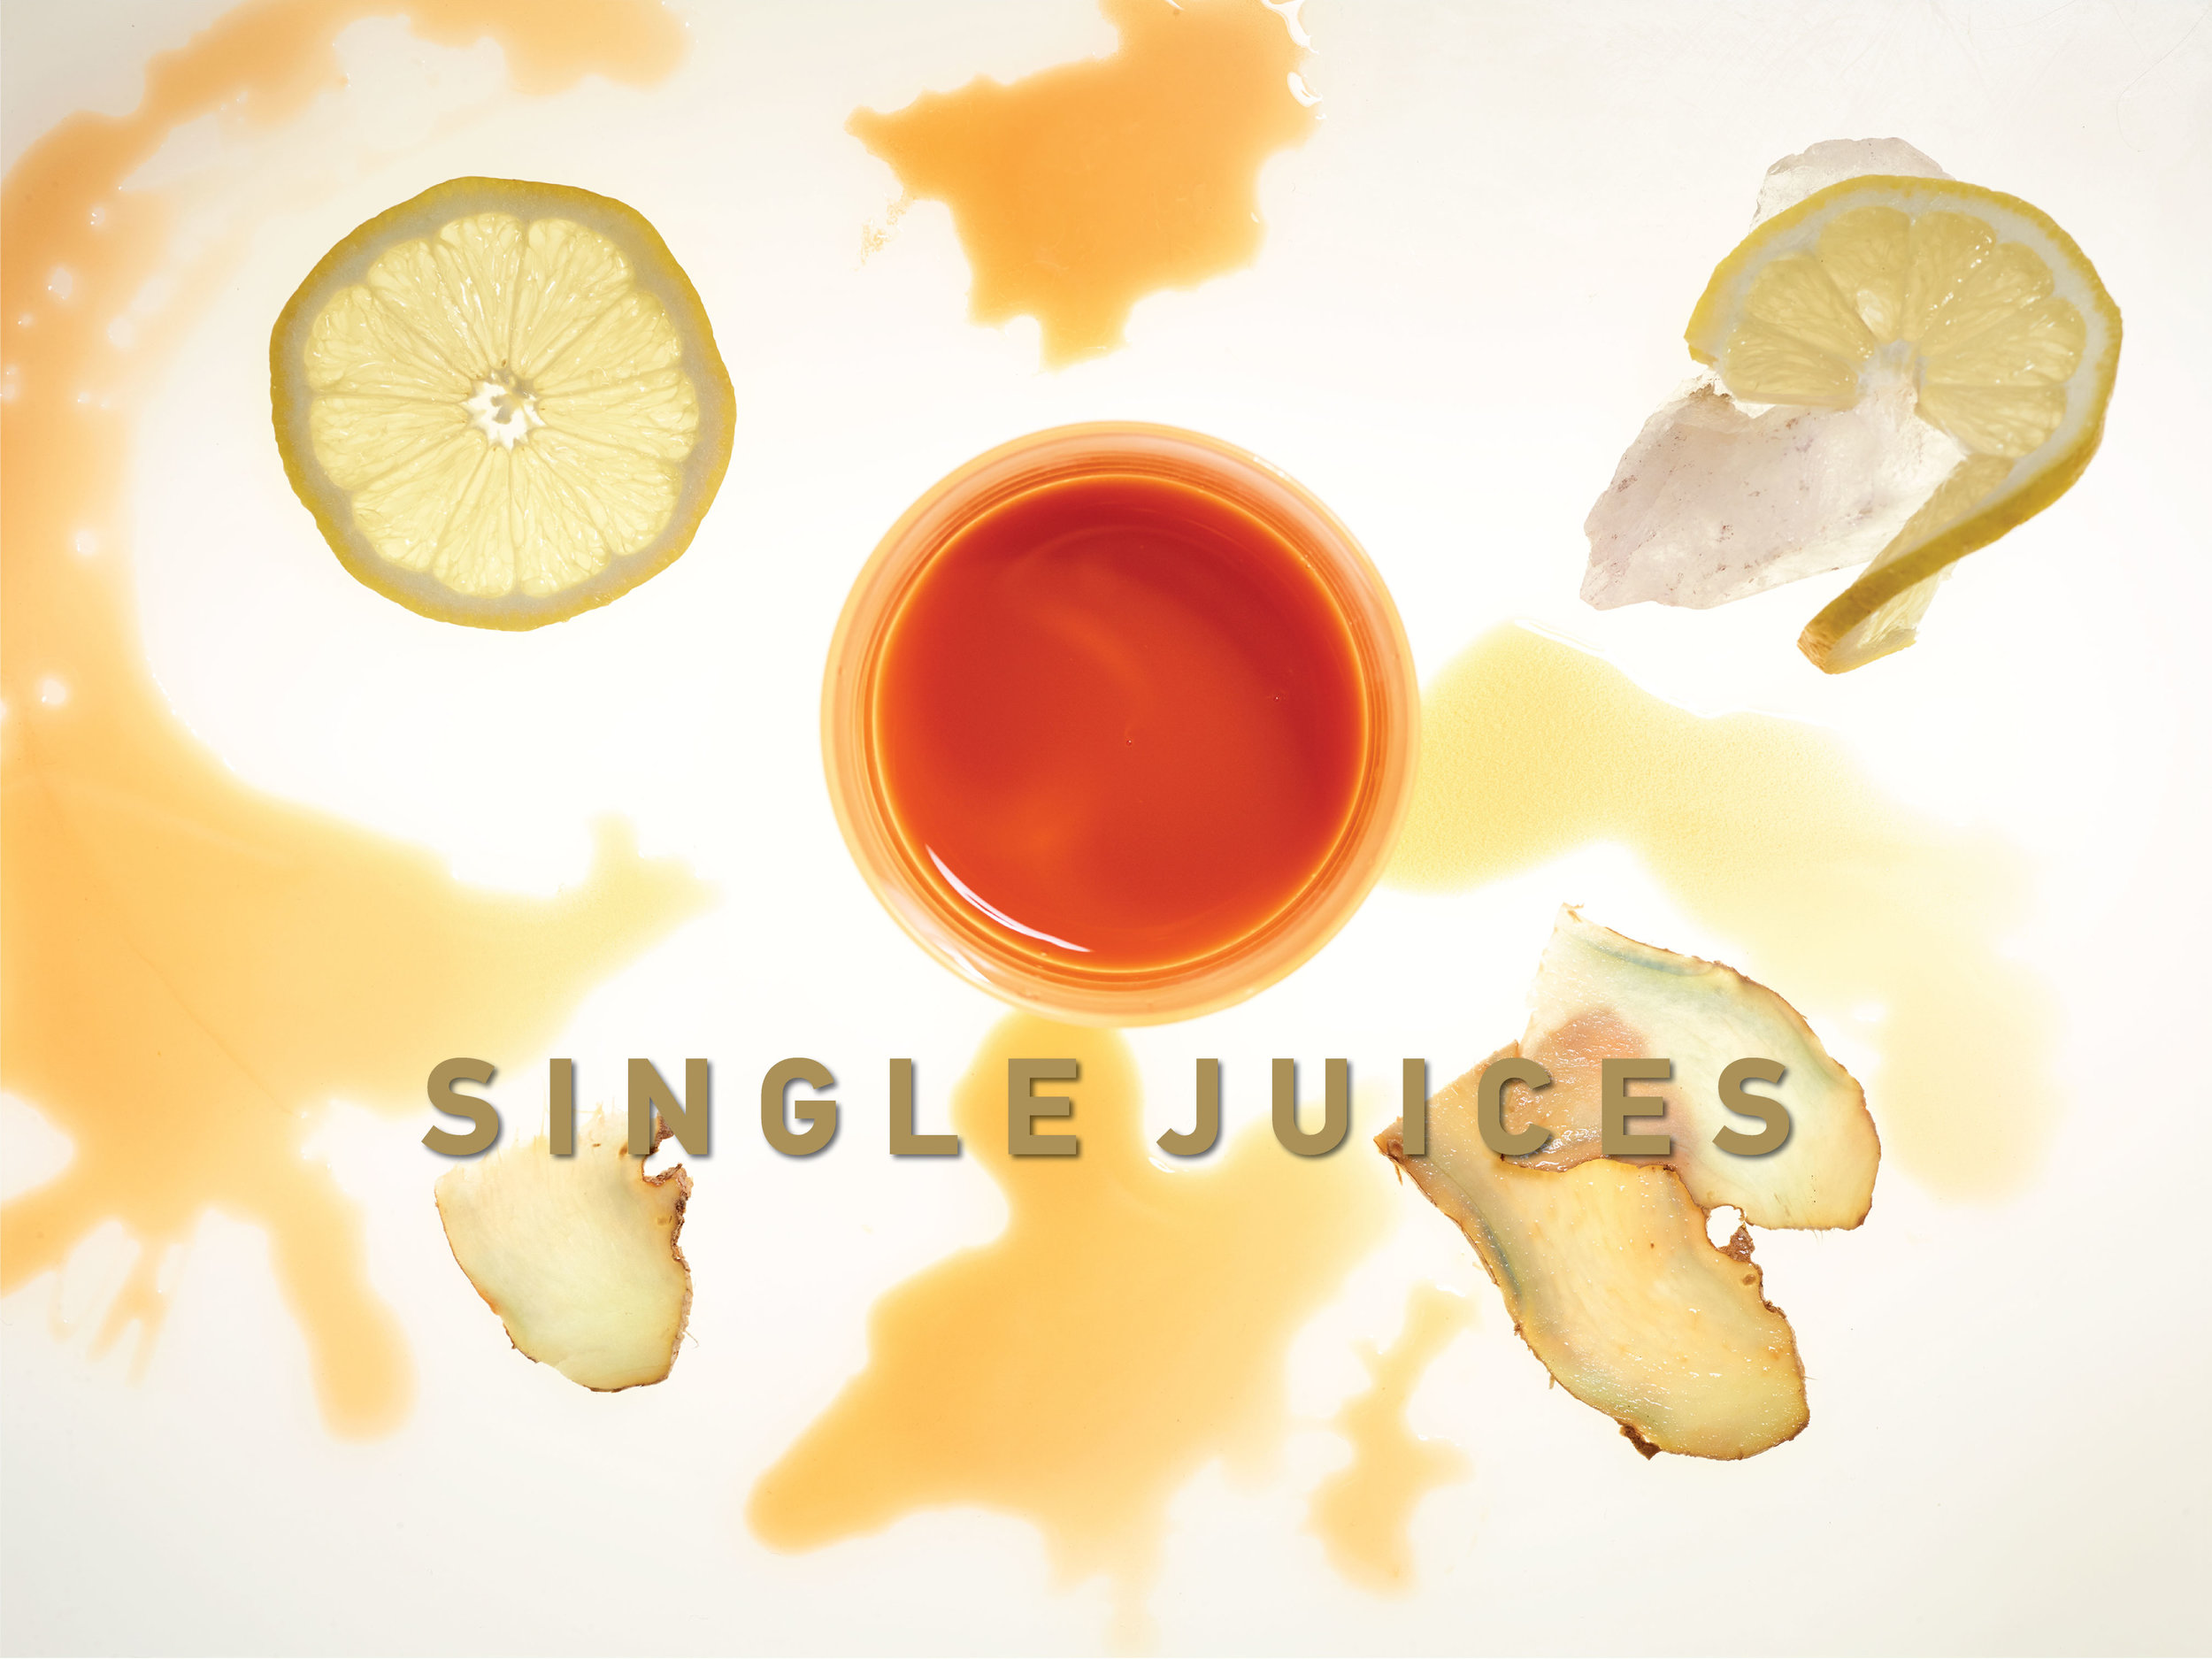 Time Machine Juice single cold-pressed juices unpasteurized, raw juice cleanse made and delivered in Chicago, IL.